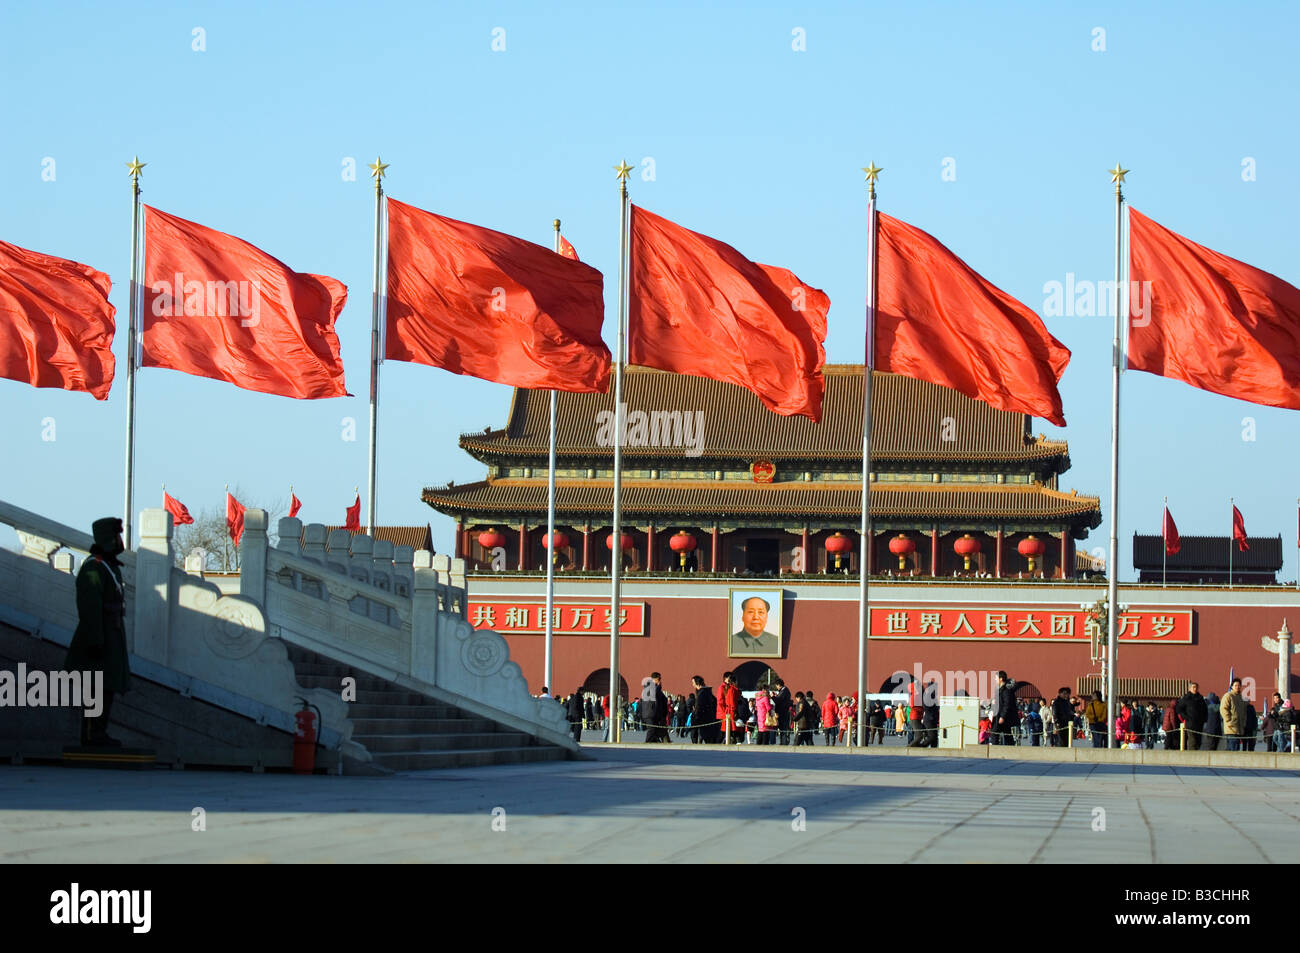 China, Beijing. Chinese New Year Spring Festival - flags and red lantern decorations on the Gate of Heavenly Peace - Stock Image